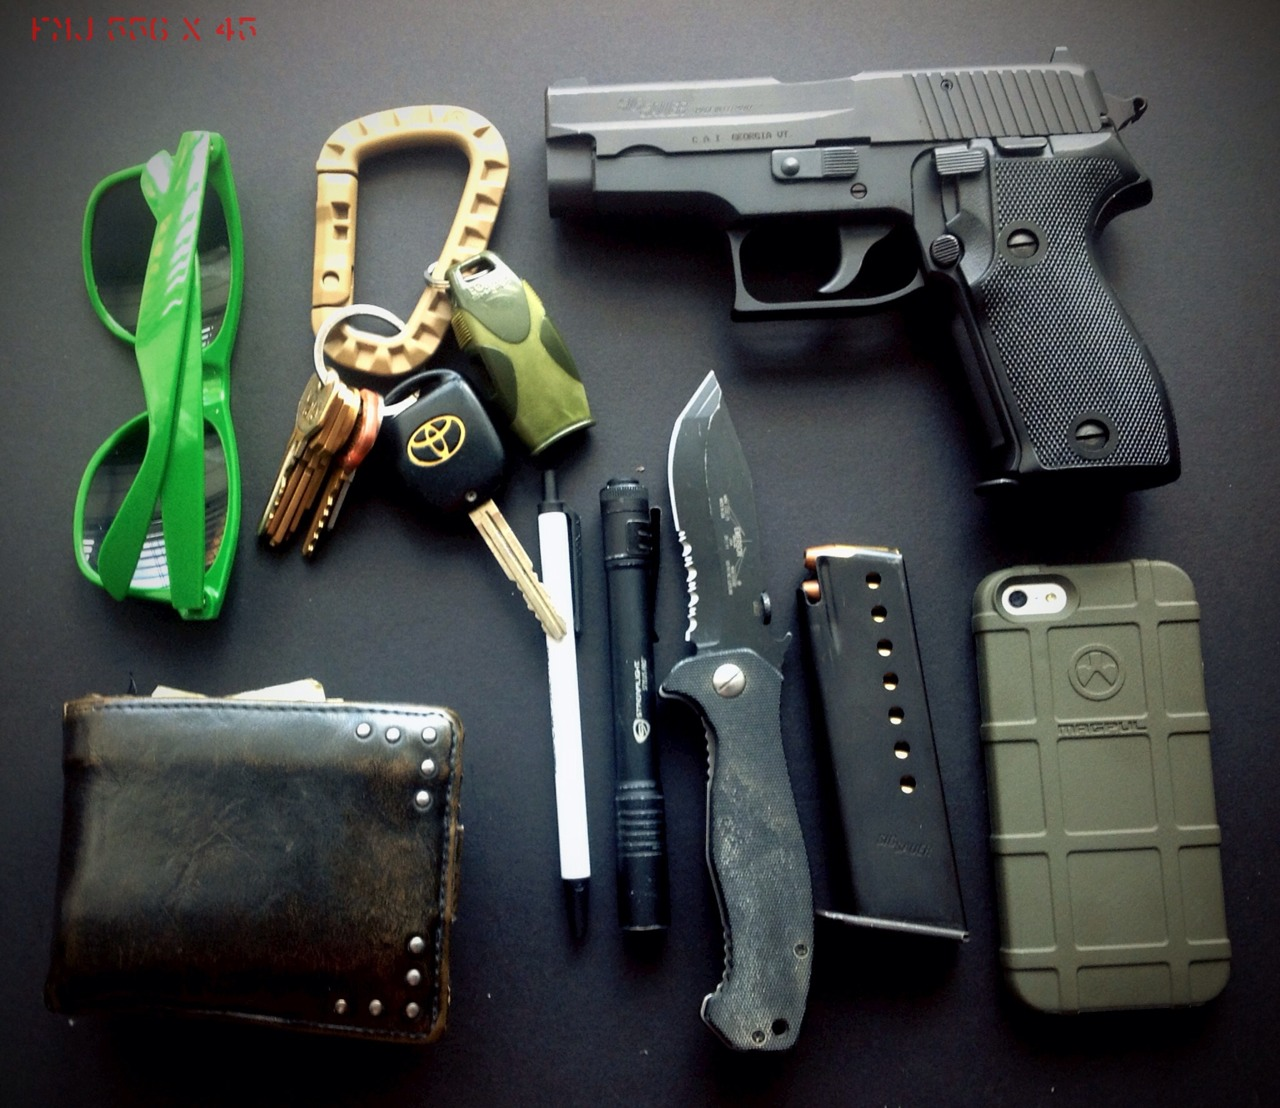 fmj556x45 :     EDC    Cheap sunglasses  FDE plastic carabiner (these suck)  Keys  Fox40 SHARX whistle od green  Sig p6 8+1 115gr. 9mm JHP  Wallet w/CHL and always $100 cash stashed  Bic clic stic   Streamlight stylus pro  Emerson Mini CQC-15 (2011)  Spare mag 8 rounds 115 gr. 9mm JHP  iPhone 5 in od green Magpul case